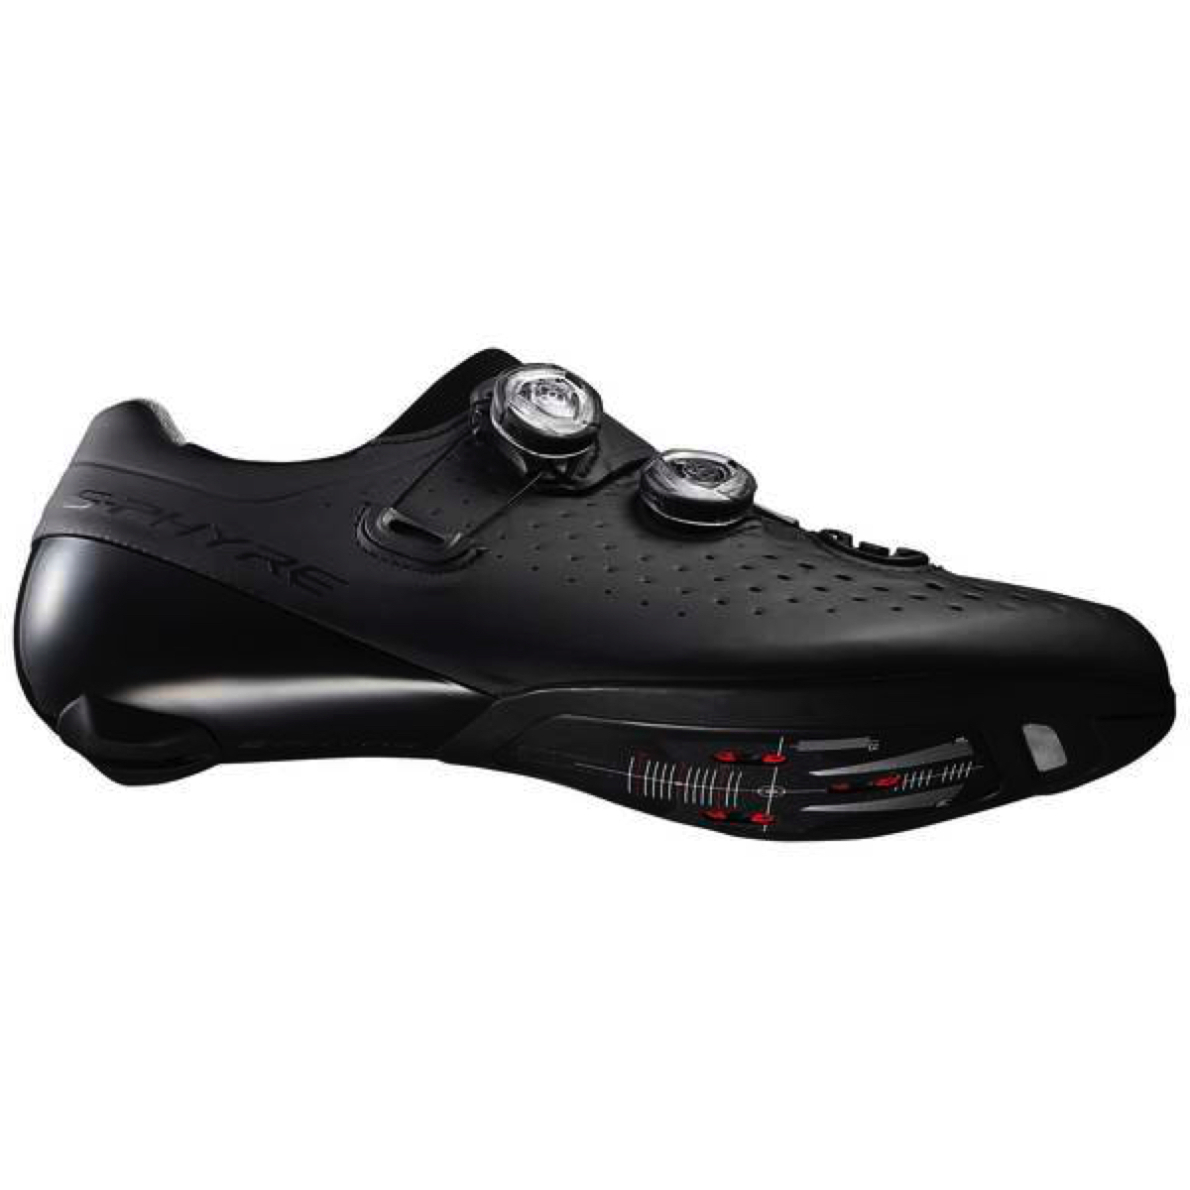 Shimano Shoe Race S-Phyre 2017 Limited Edition